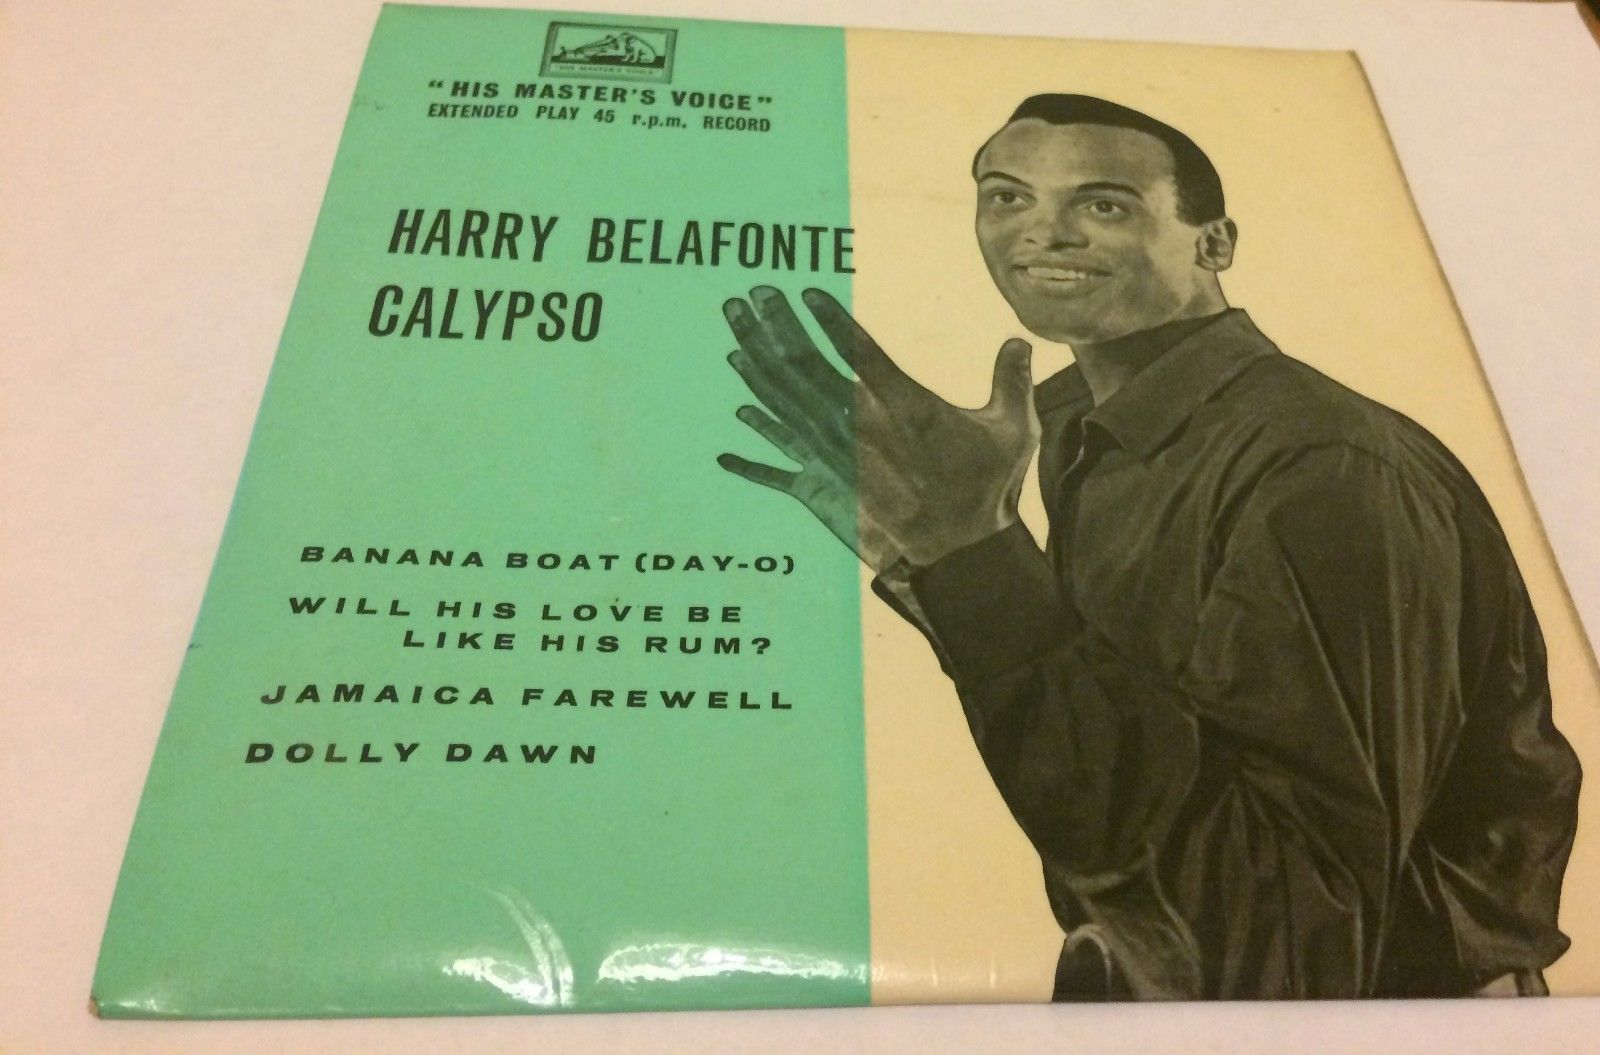 A picture of the album covering of Harry Belafonte's record Calypso.